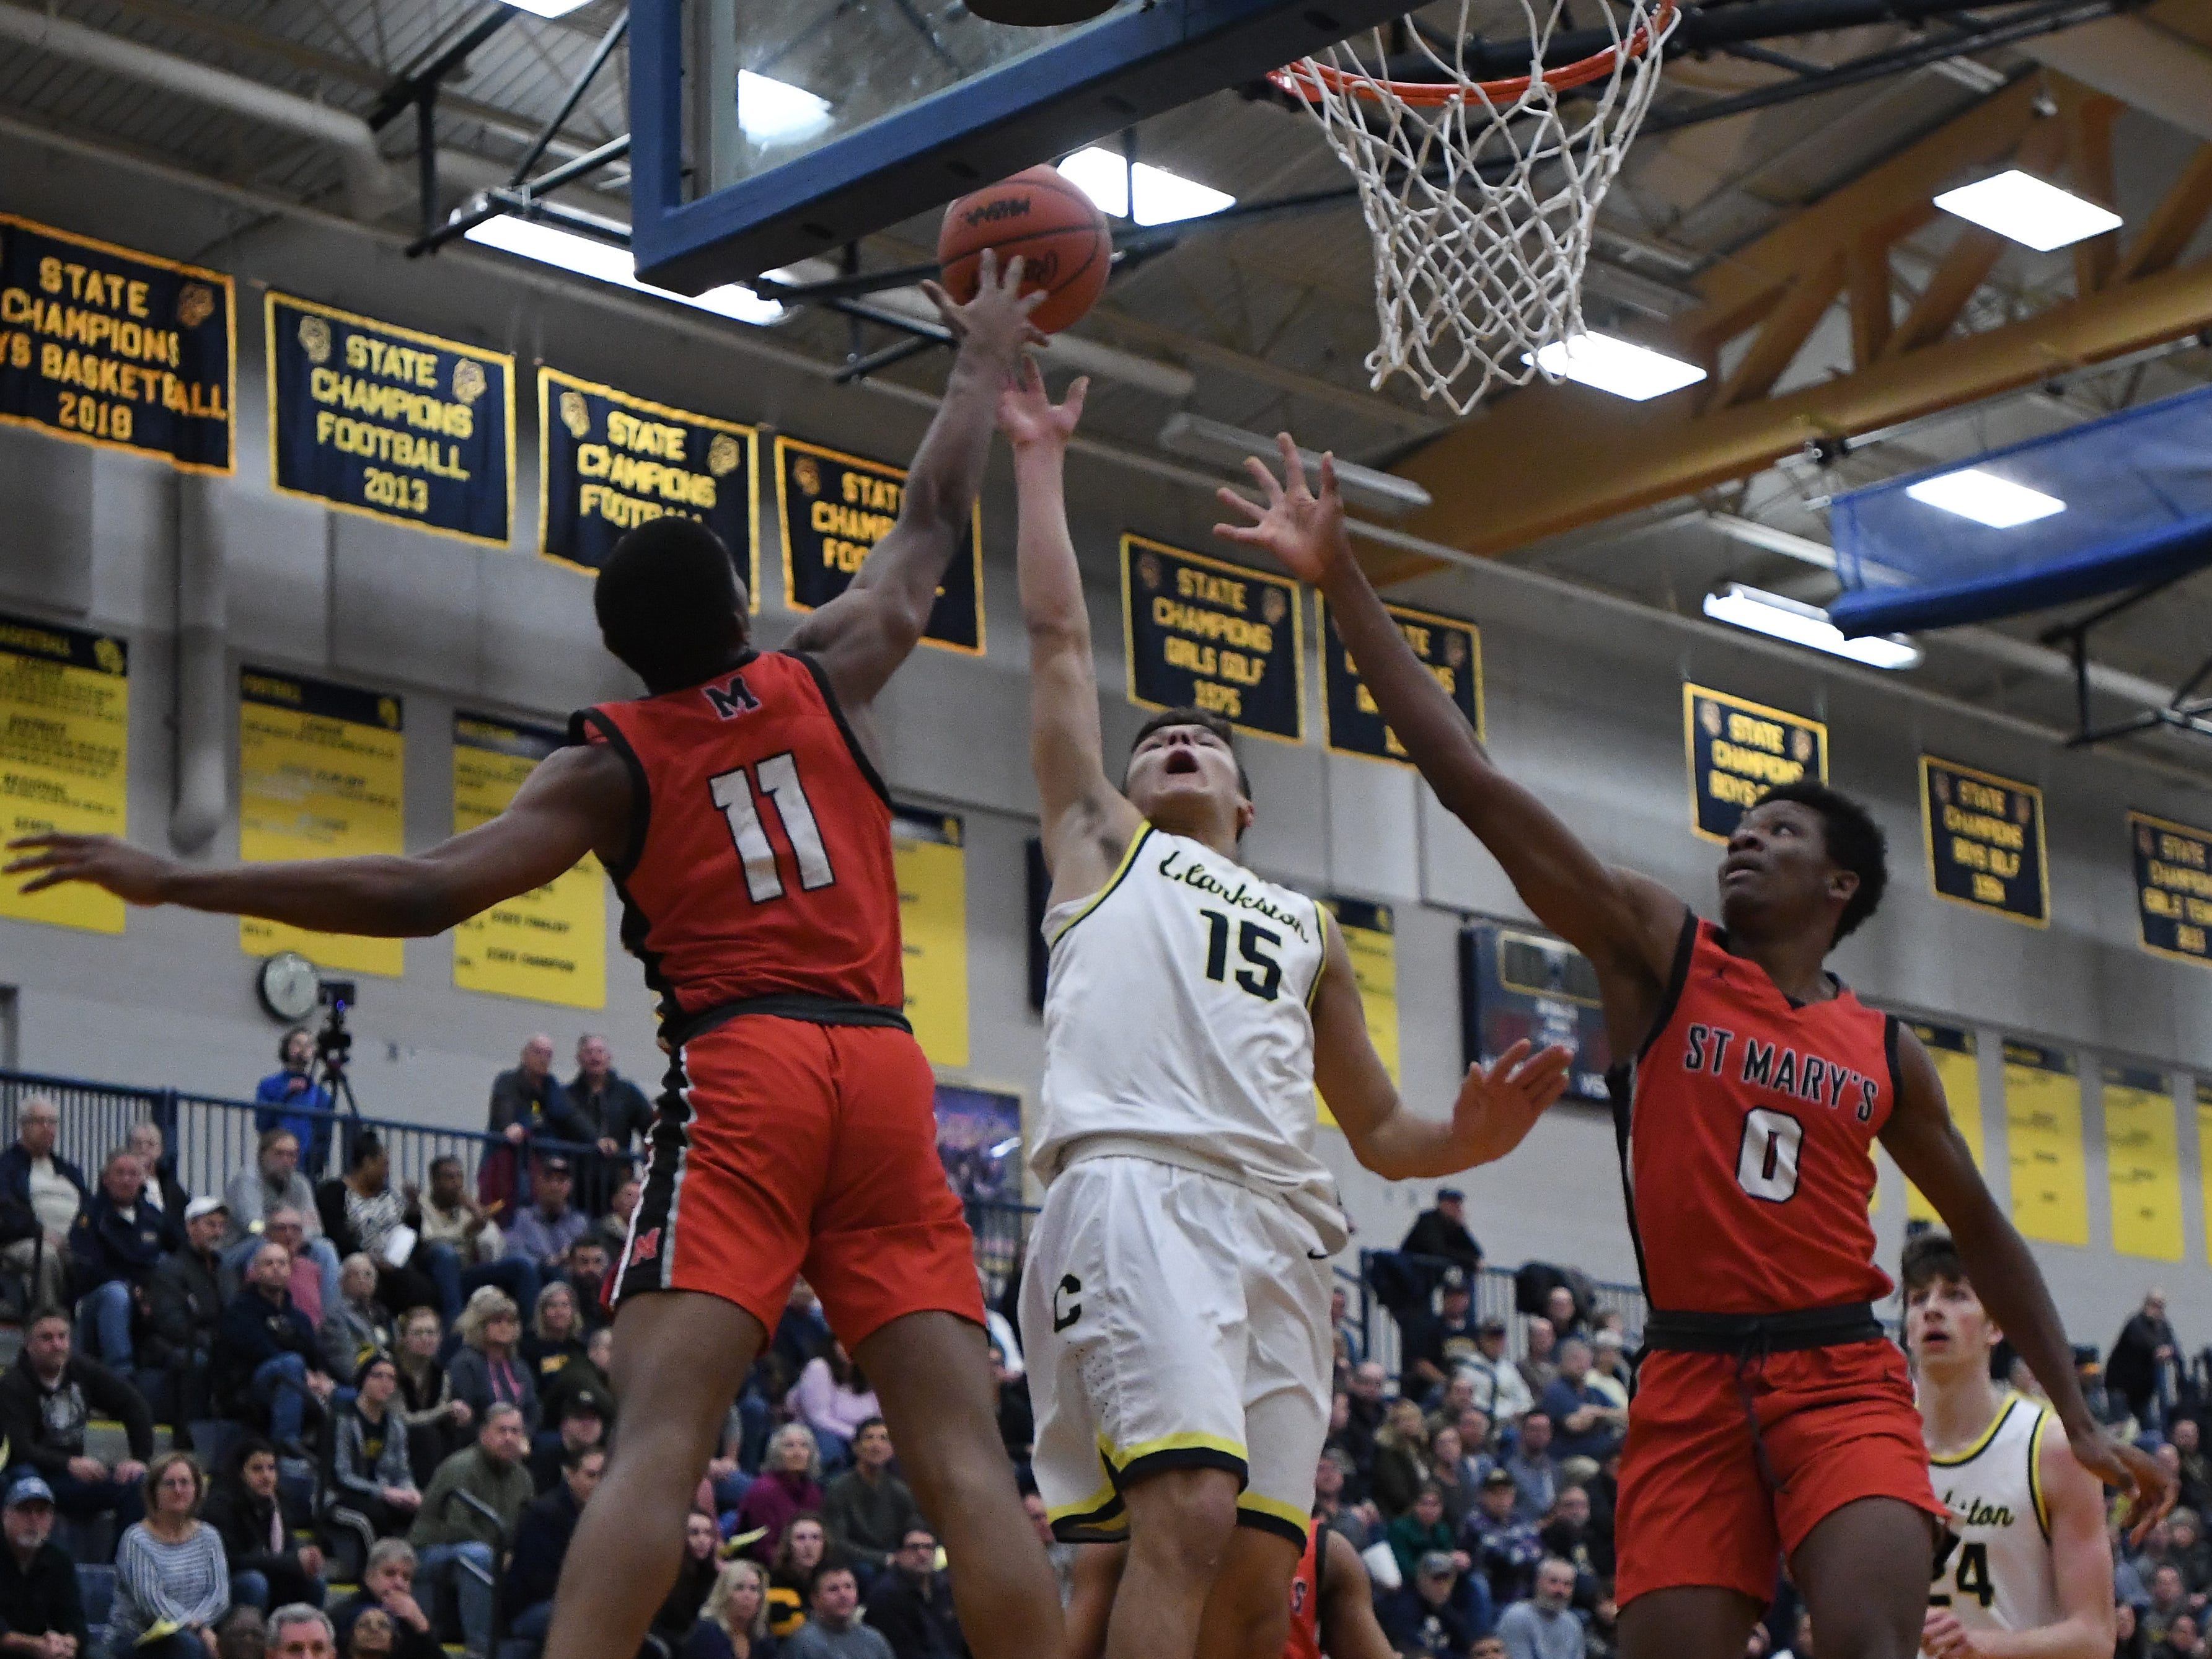 Clarkston's Keegan Wasilk lightly puts up a shot that goes in for two over St. Mary's defense in the first quarter.